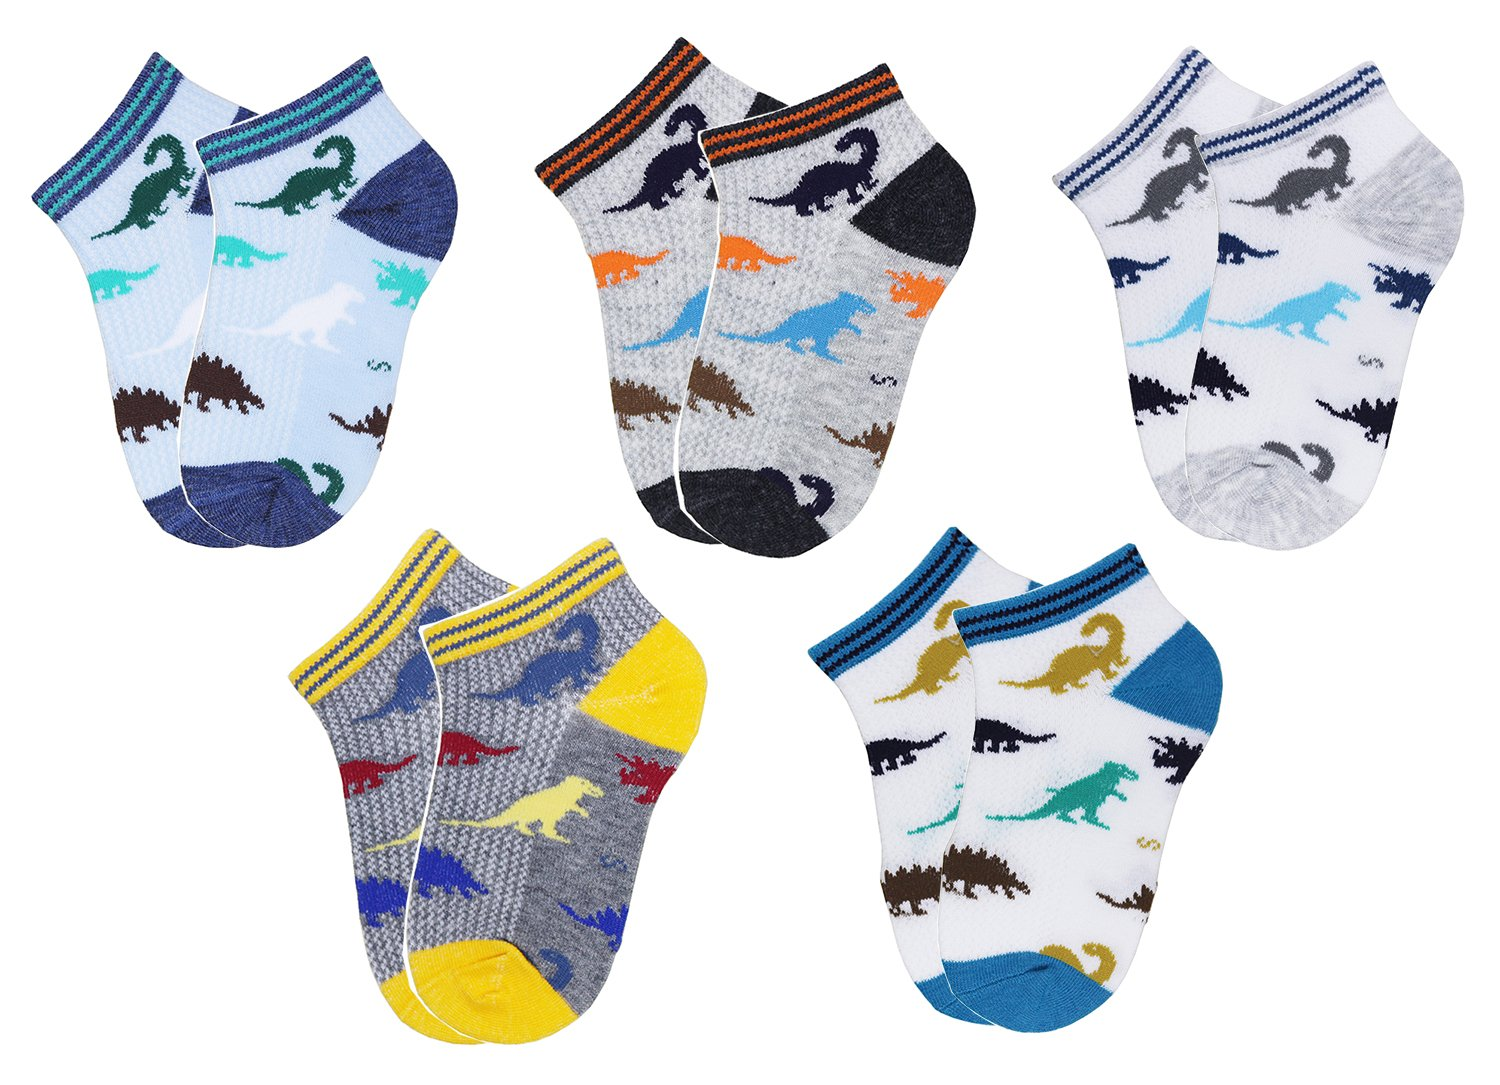 CHUNG Little Boys Thin Half-Mesh Low Cut Socks Summer No Show 5 Pack, Dinosaur 01, 7-9Y by CHUNG